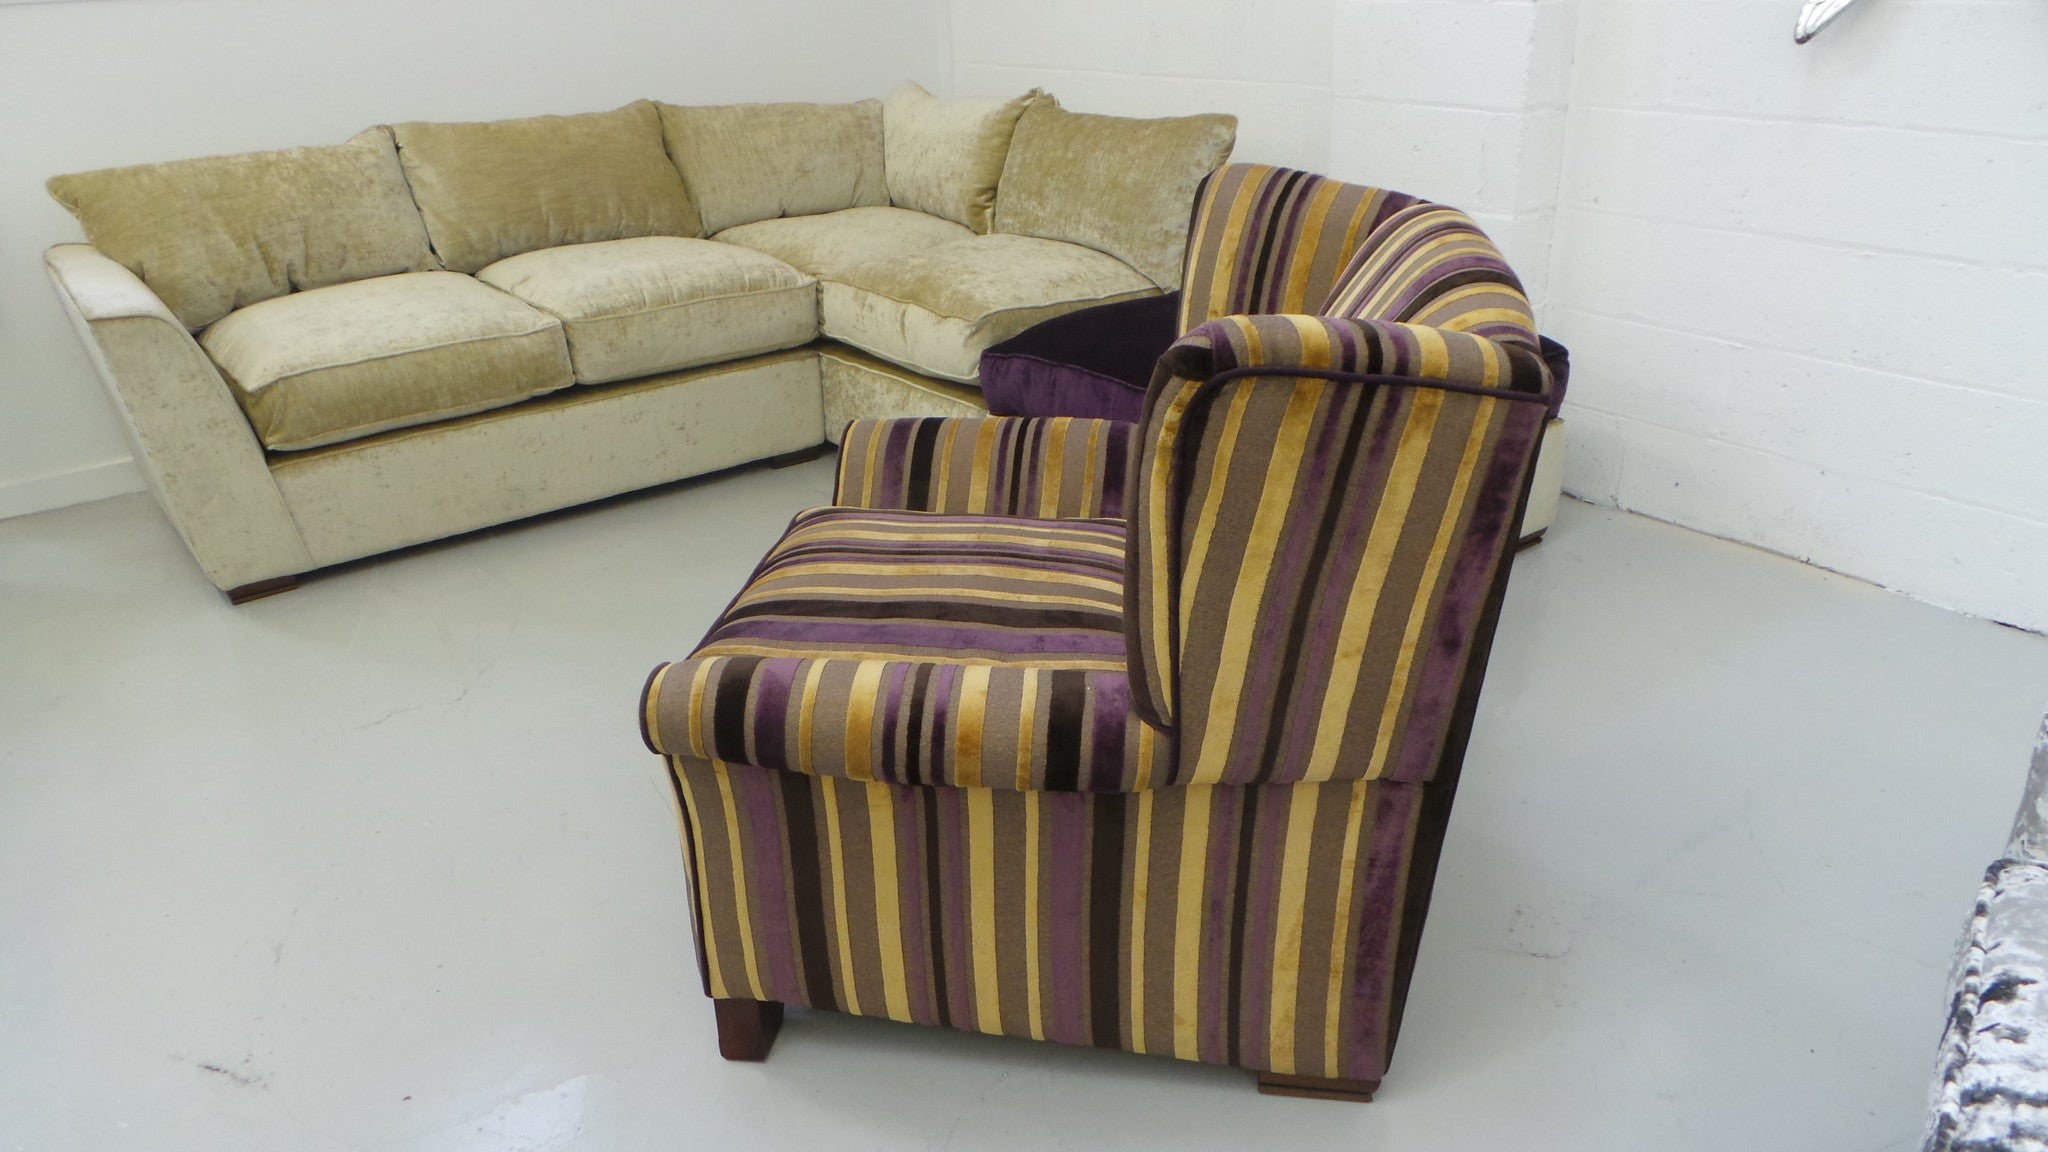 CHAIR Plush Wingback Armchair in Striped Gold & Purple